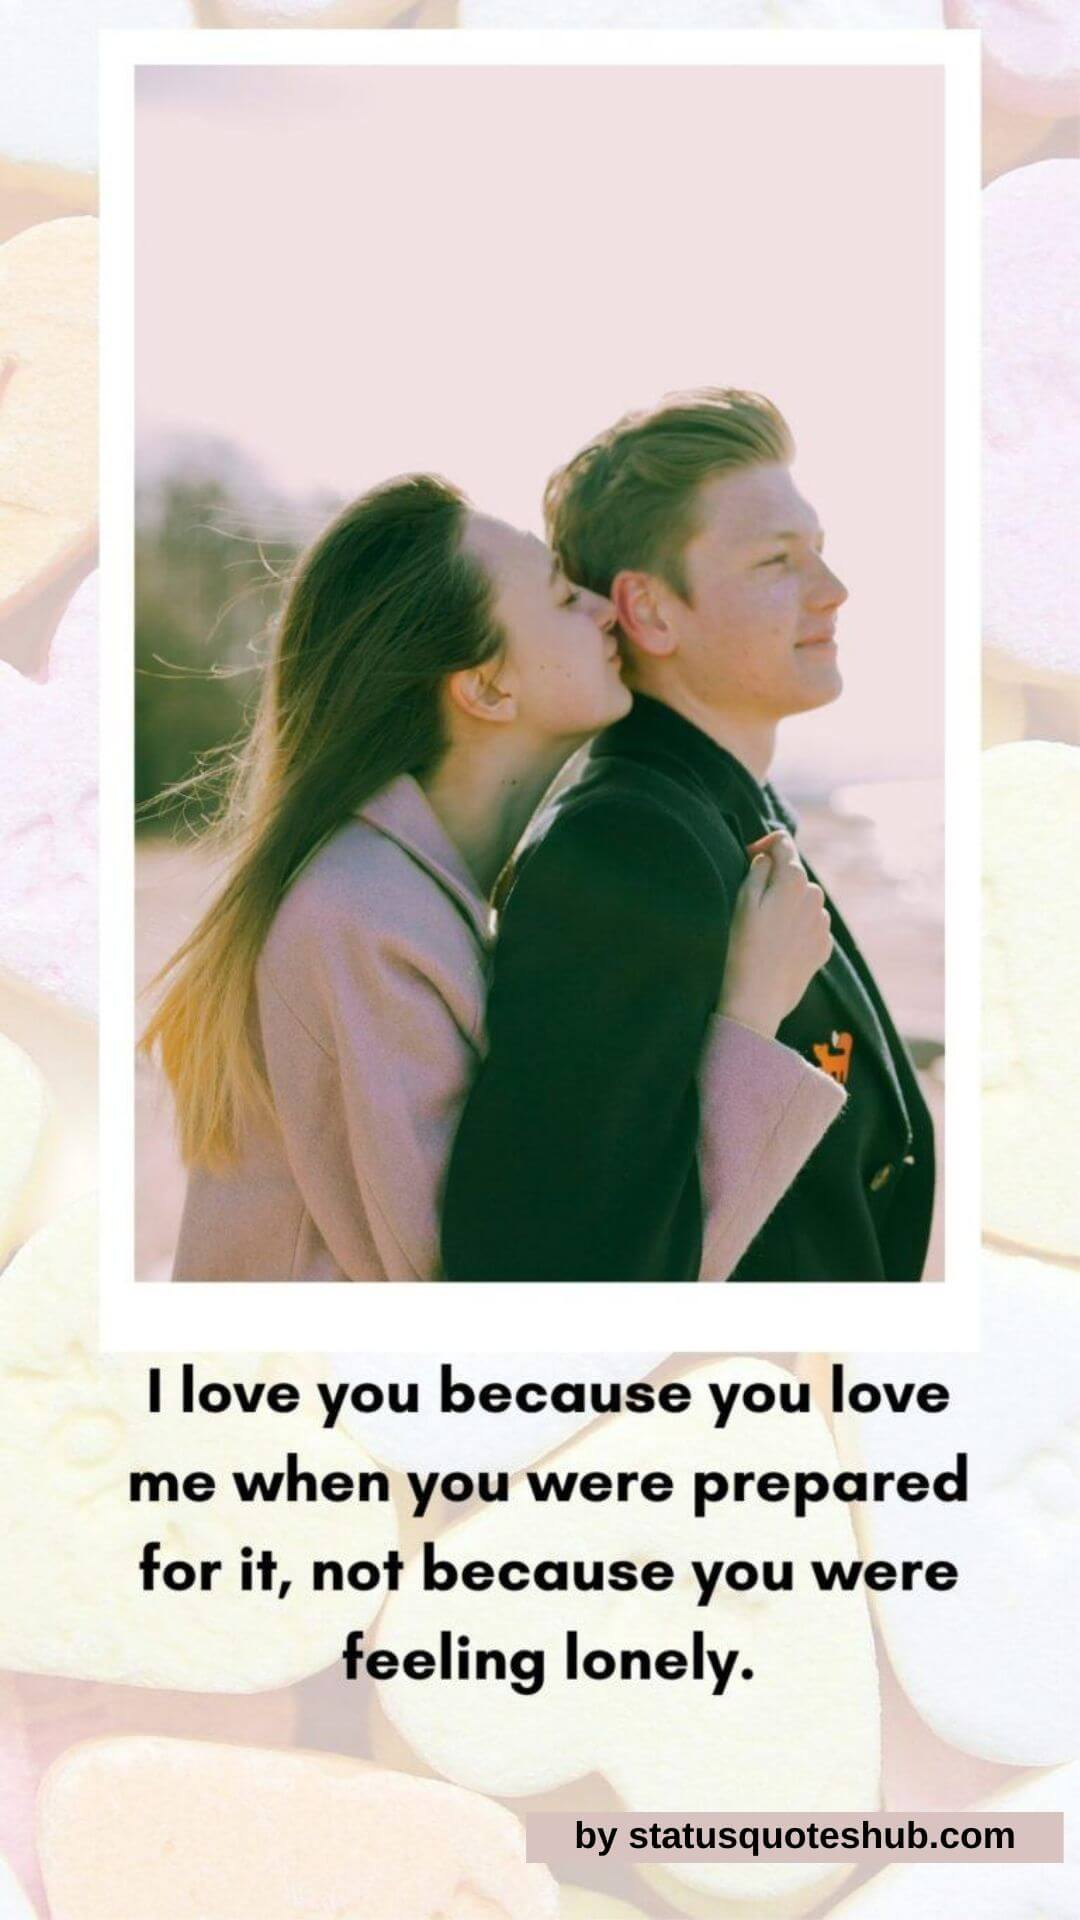 best love quotes for whatsapp 2020